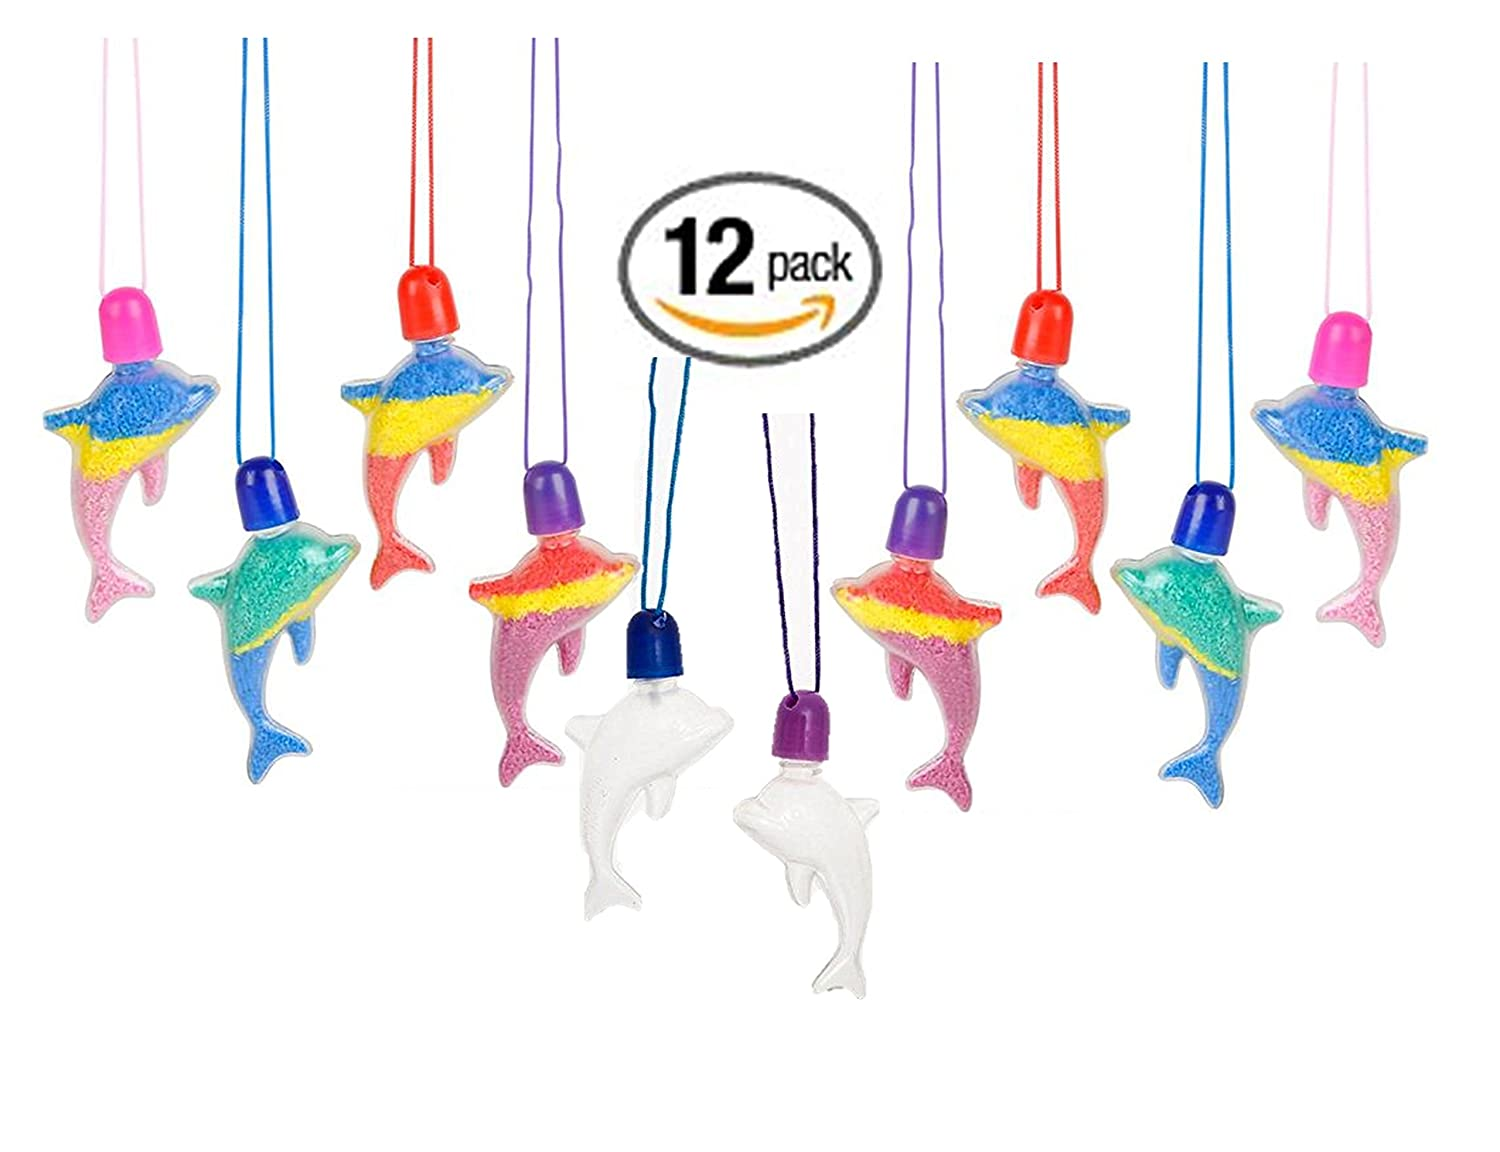 Sand Art Necklaces Packege of 12 Fun Crafts Activity /& Great party accessories Play Kreative TM Dolphin